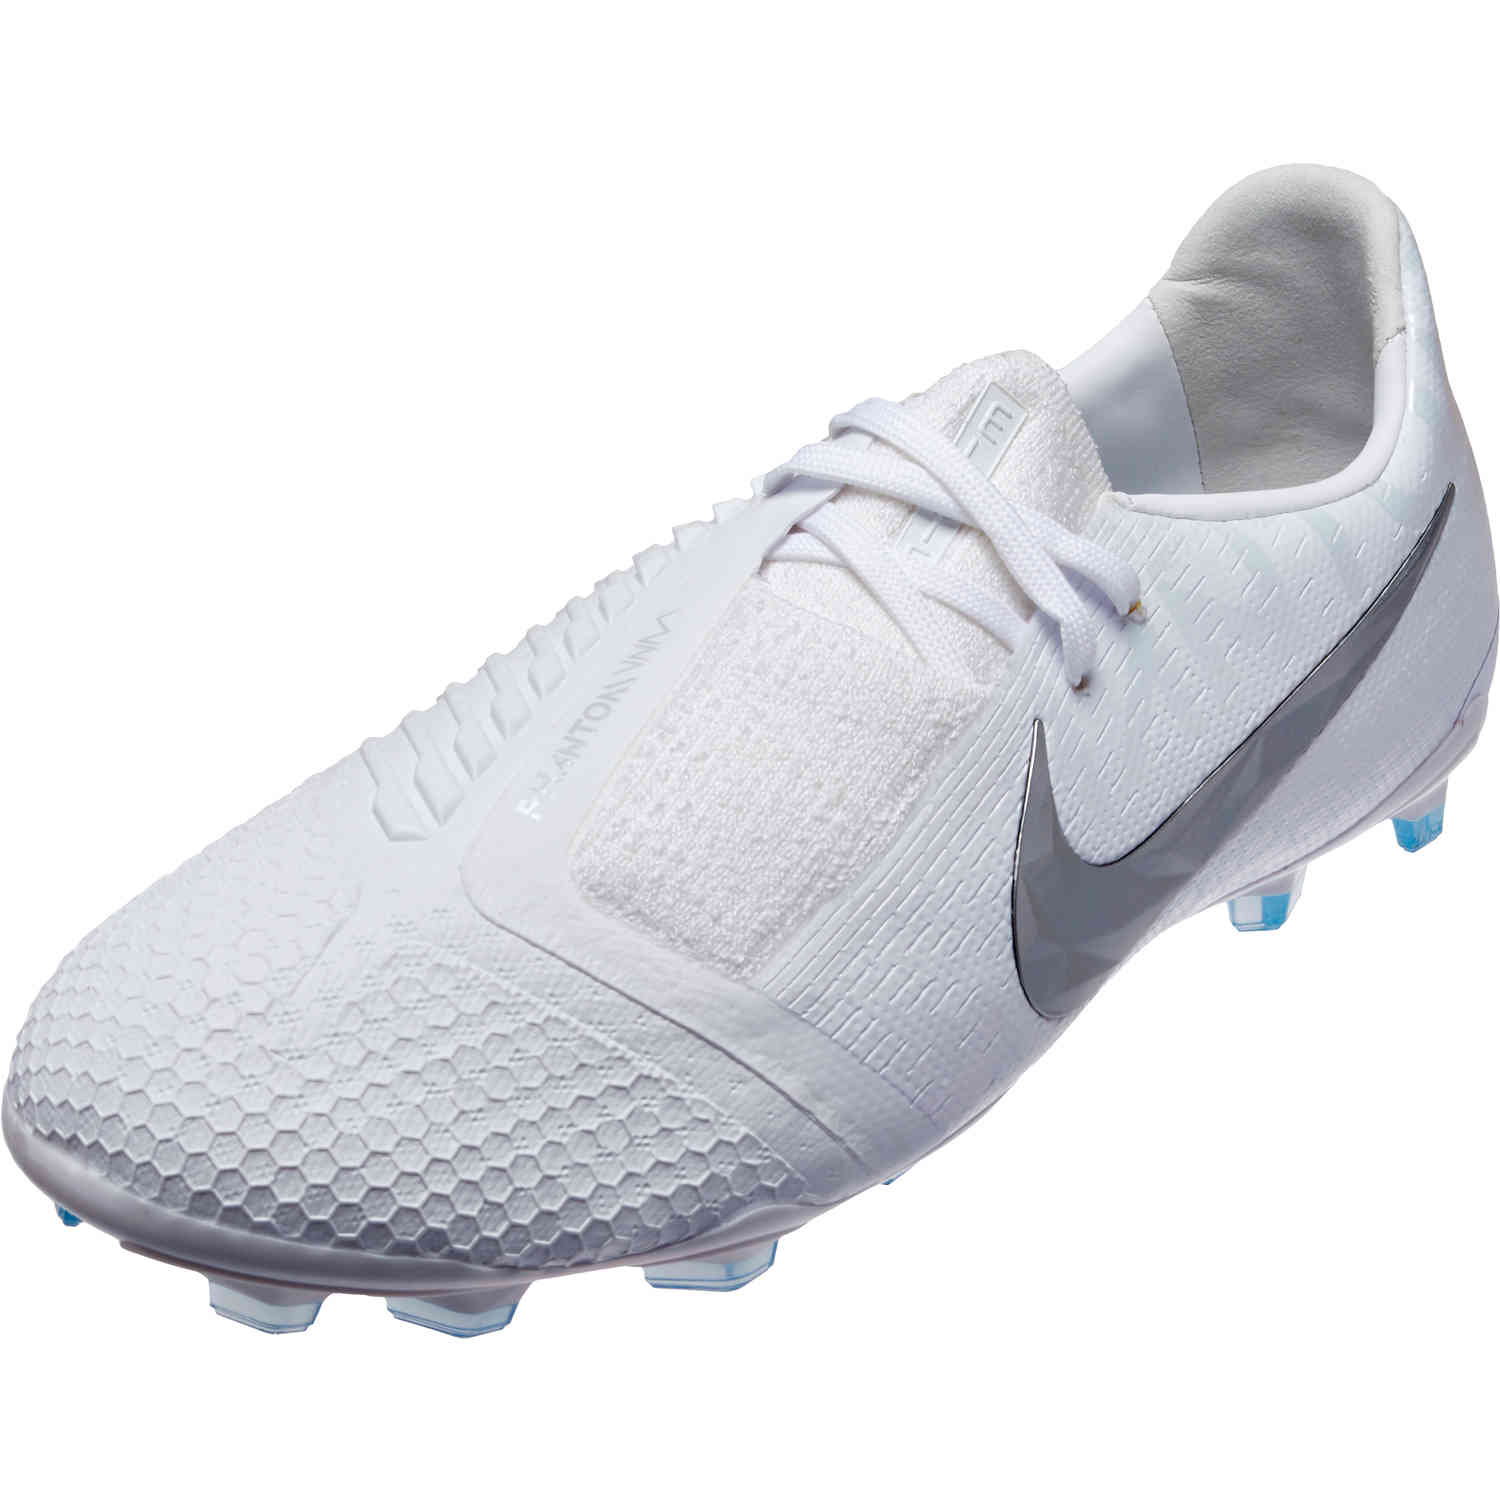 Cheap Nike Nuovo, Cheap Nike Nuovo Football Boots Sale 2020